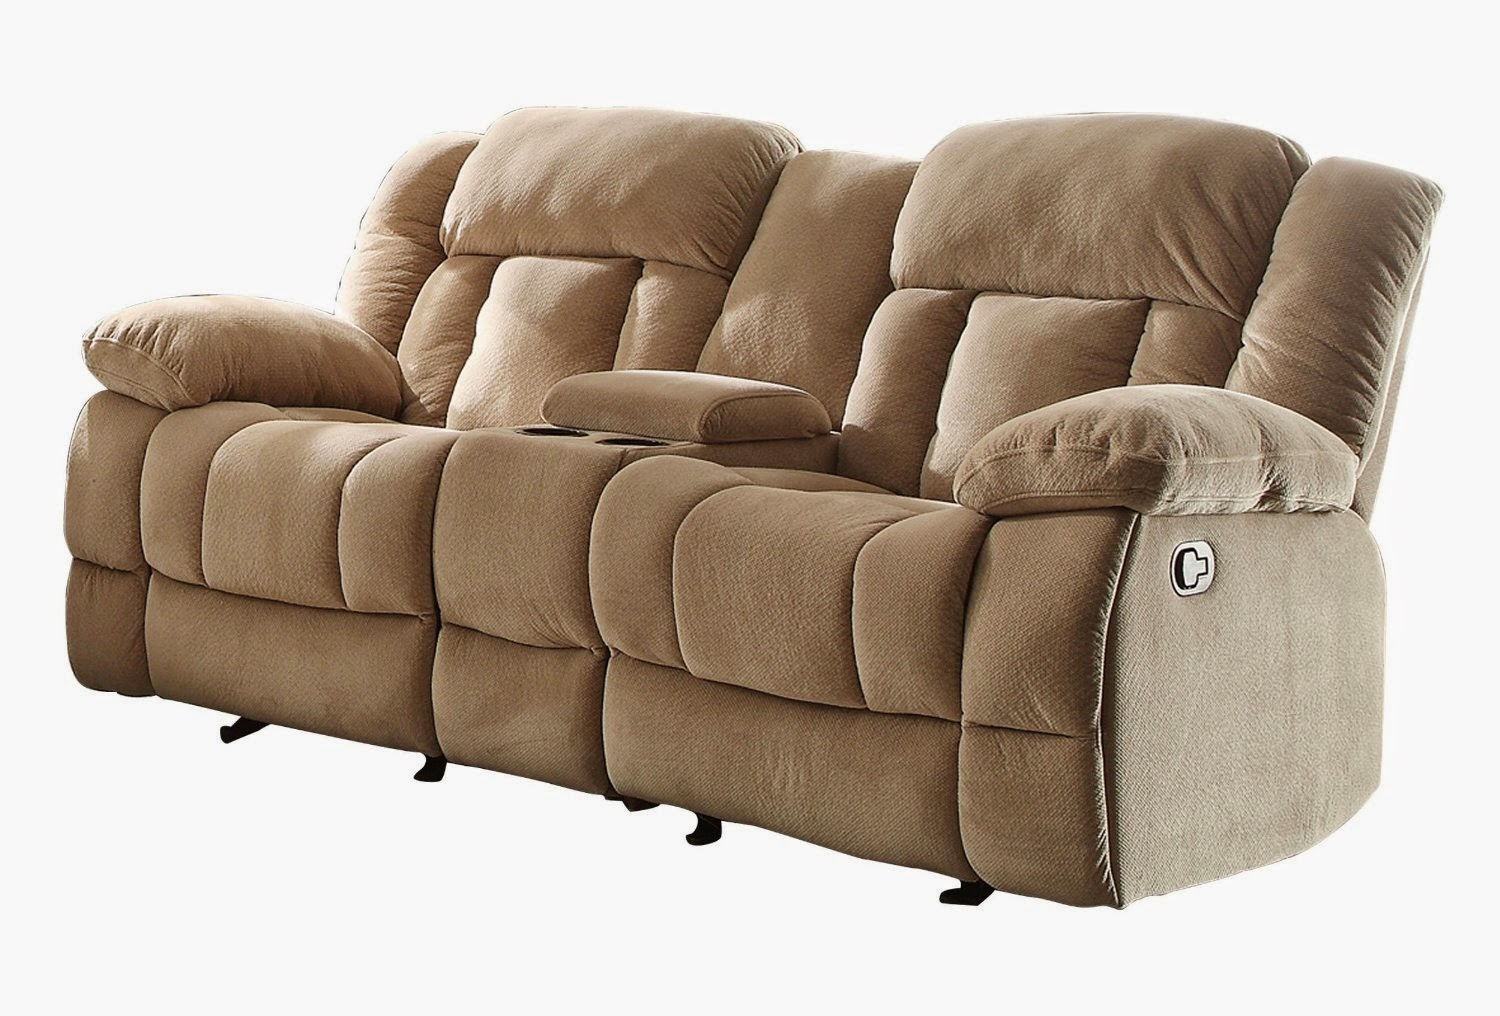 Where is the best place to buy recliner sofa 2 seat reclining sofa microfiber Loveseats with console